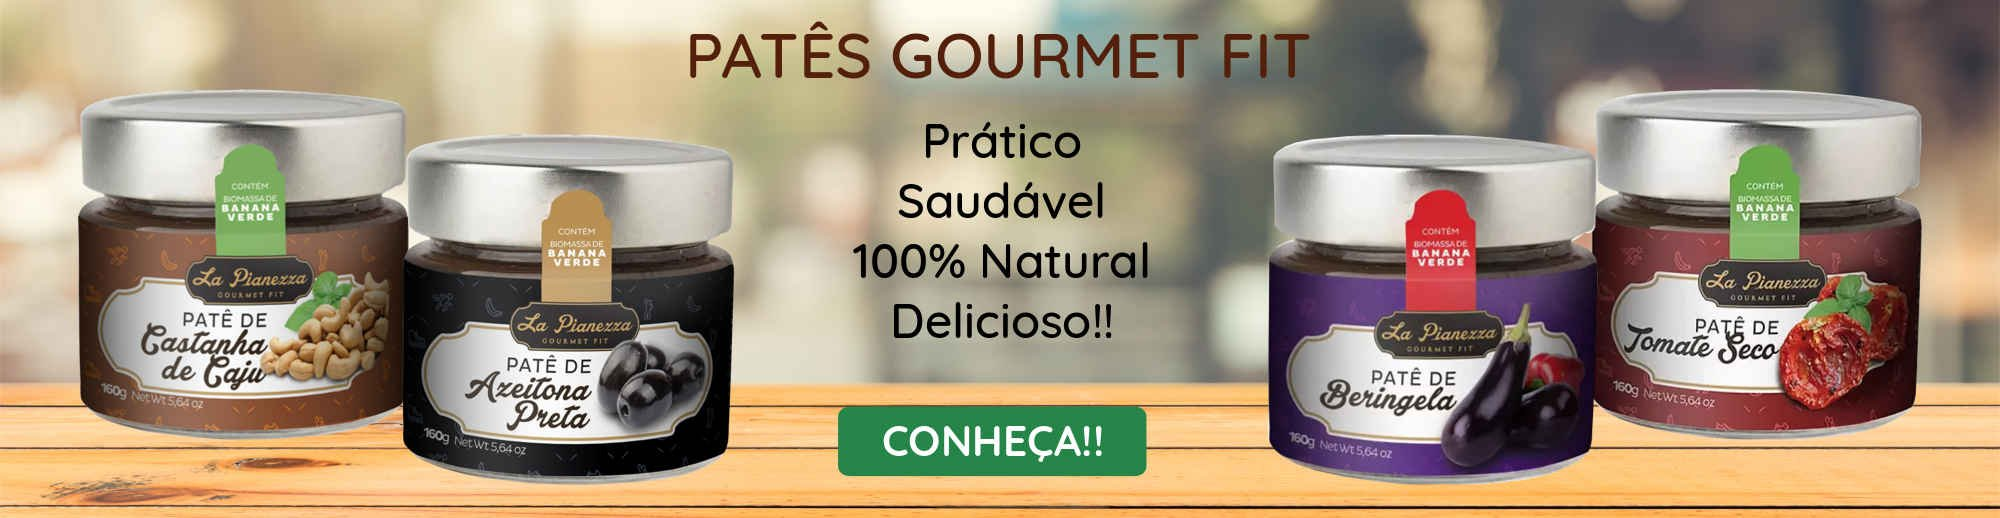 Patês Gourmet Fit La Pianezza